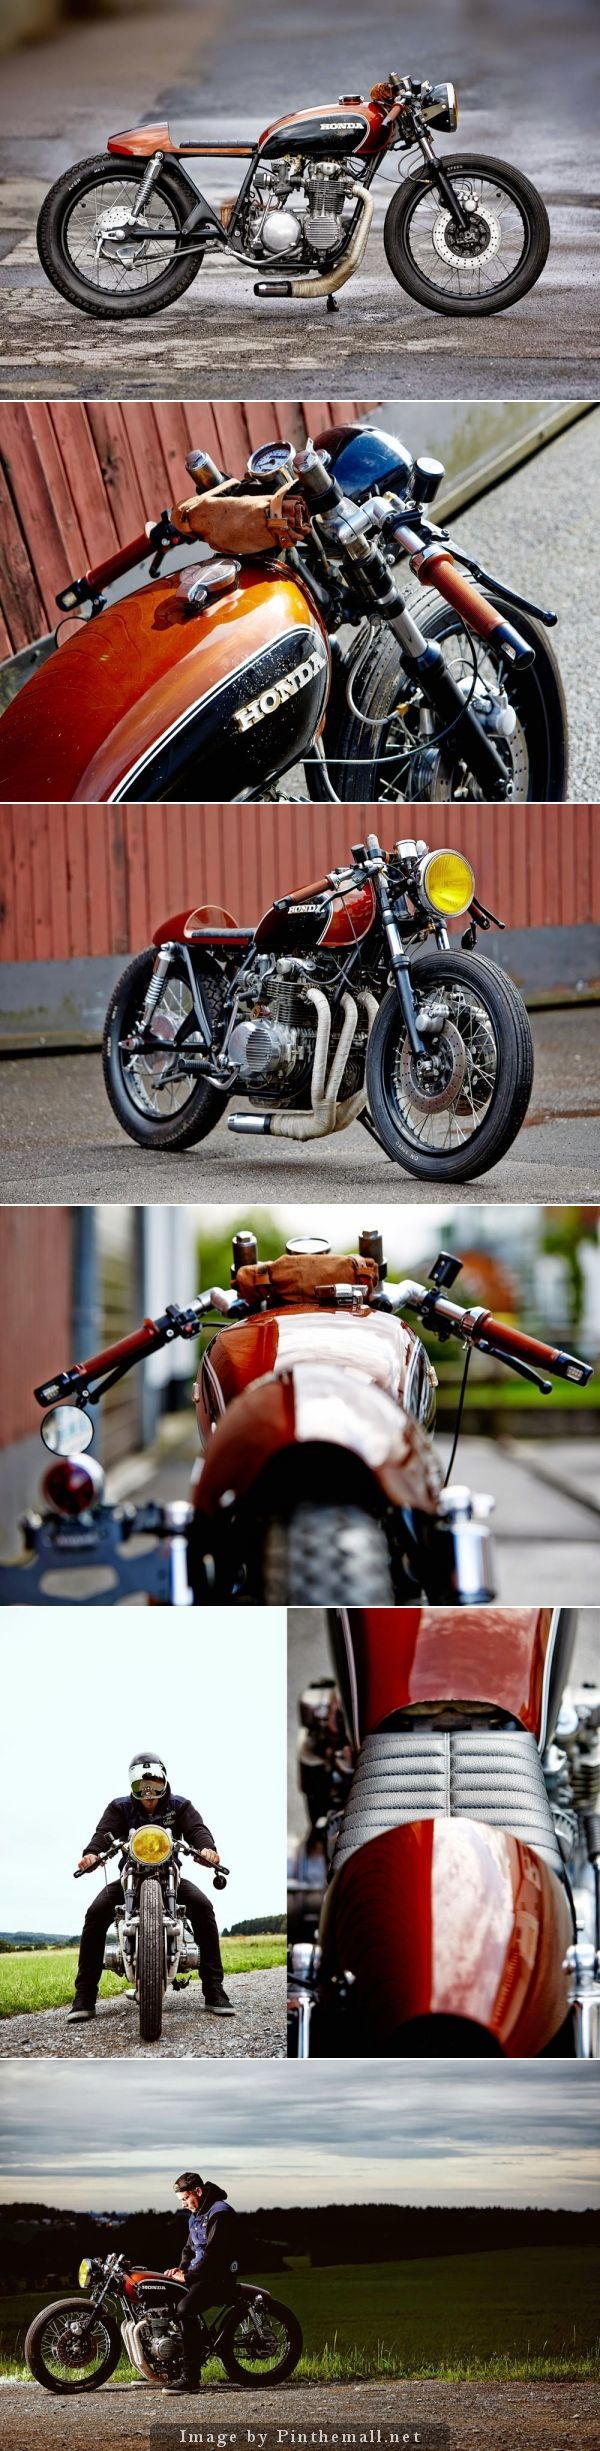 For Motorcycle fans: Fate Customs Honda CB550 Click to read the full story: